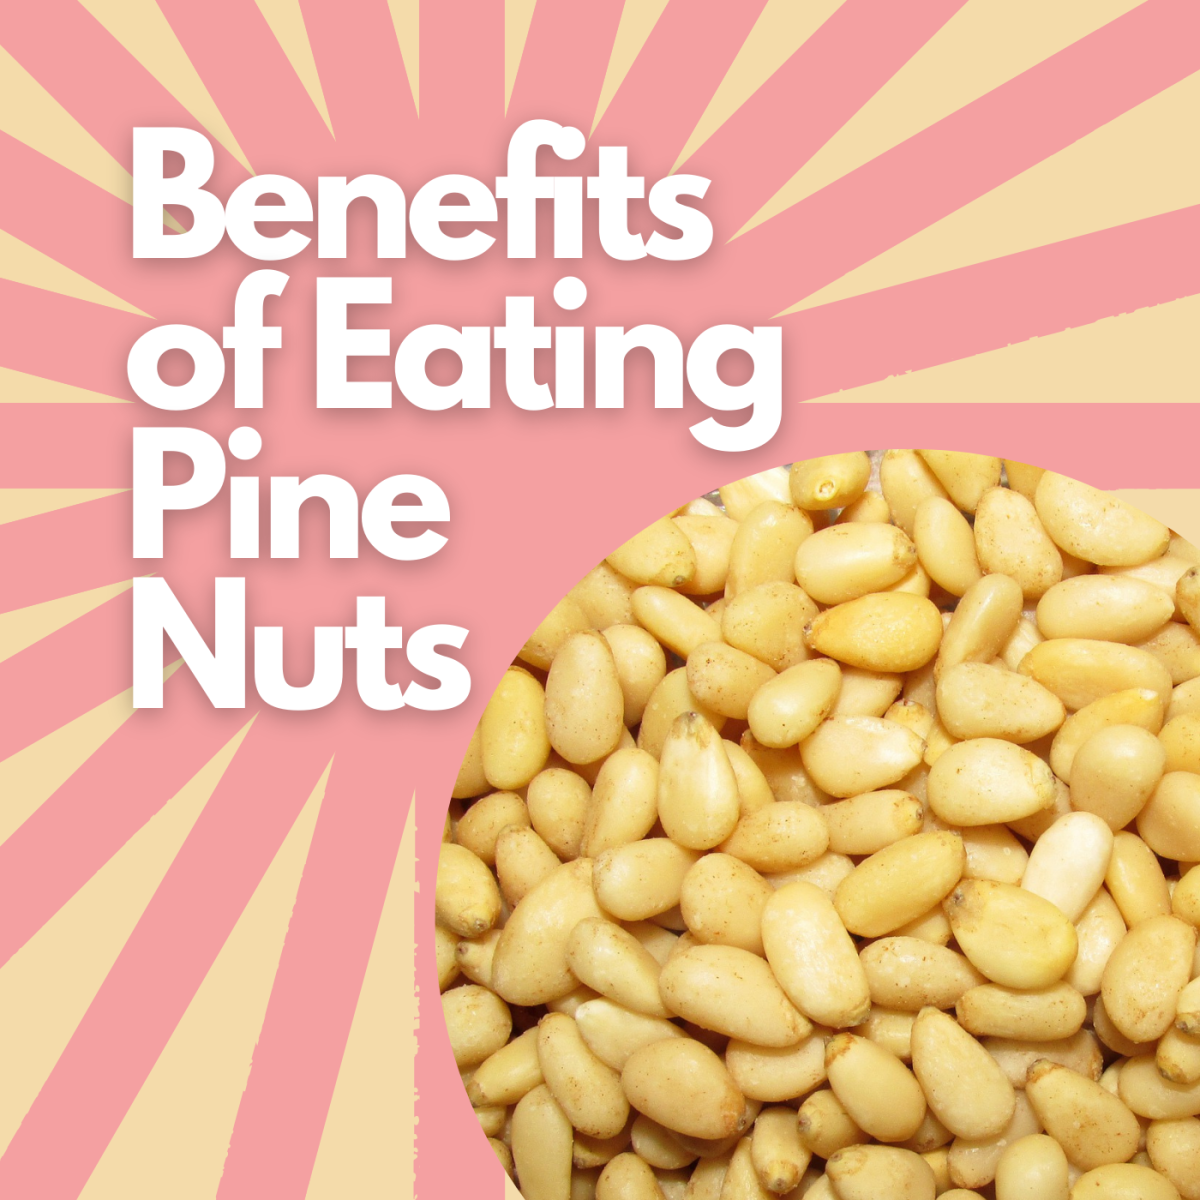 Discover the many health benefits of eating pine nuts.